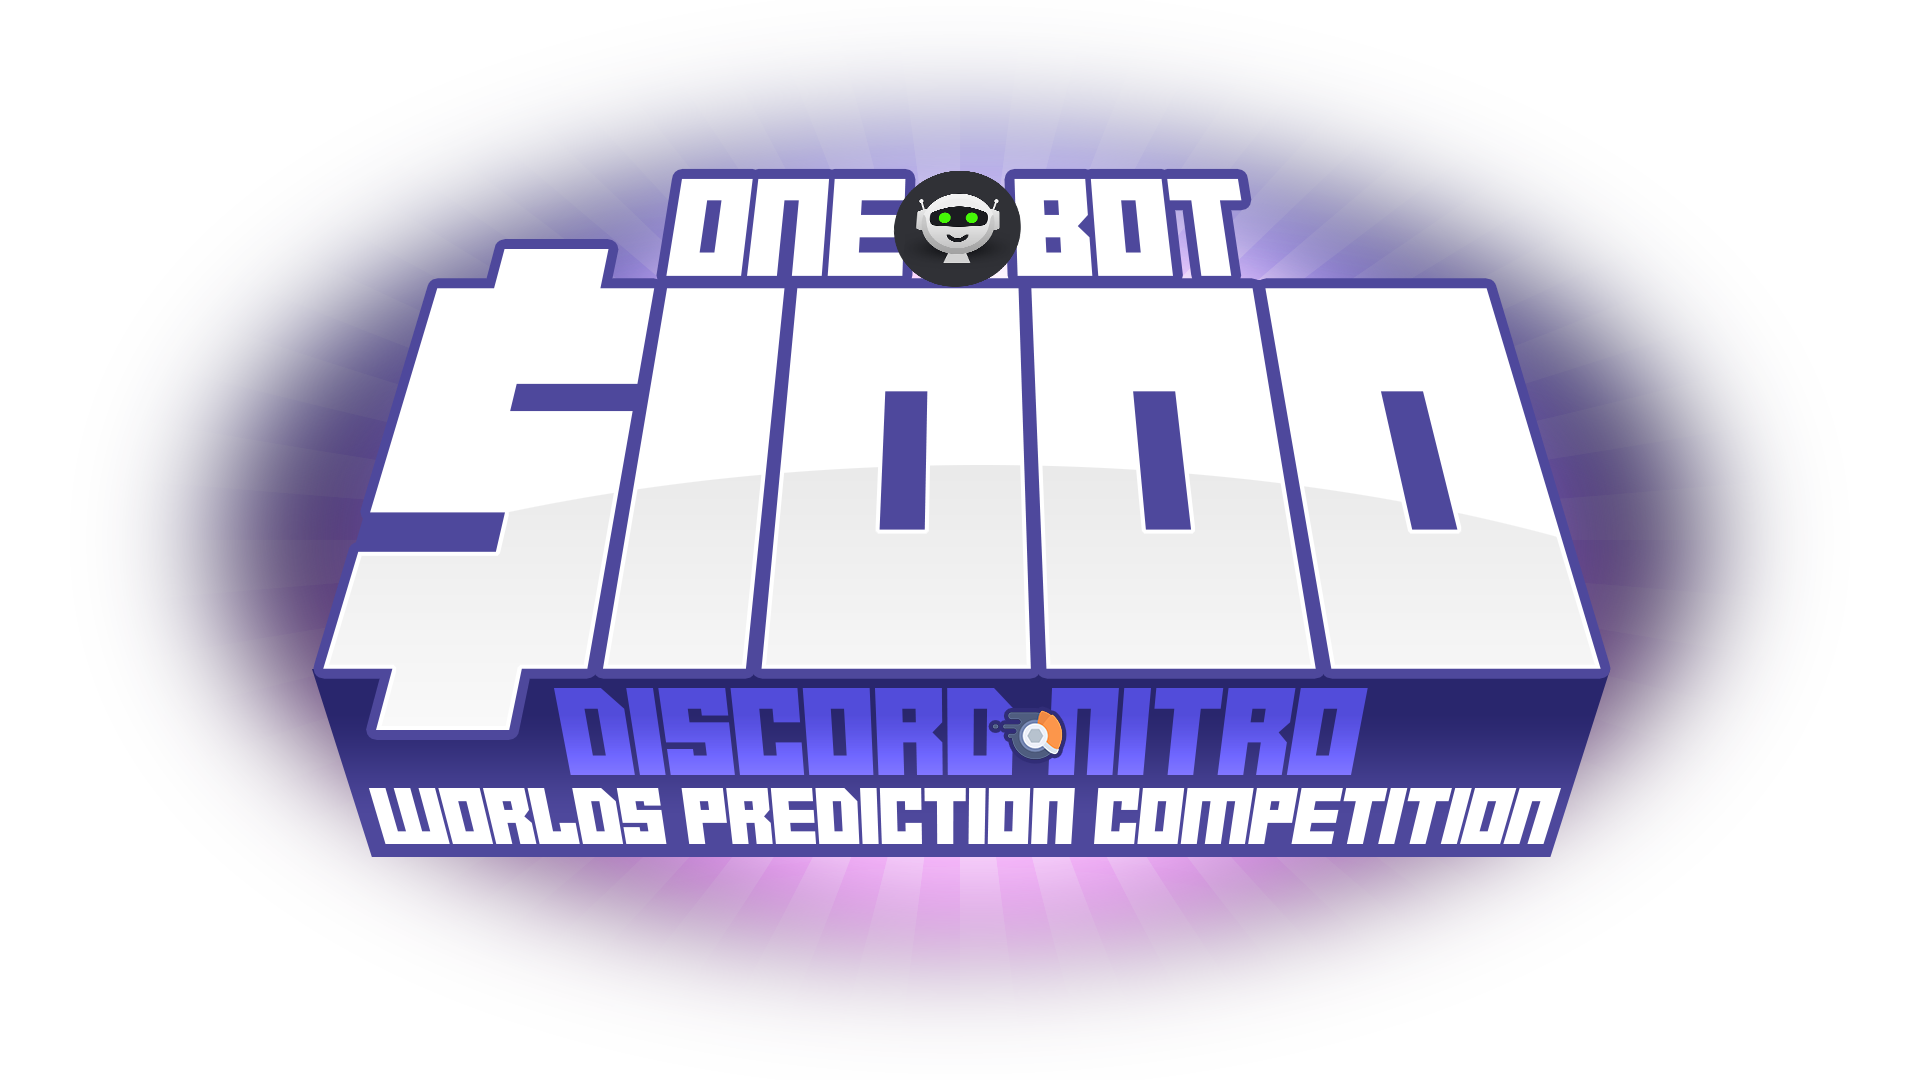 OneBot Worlds Prediction Competition